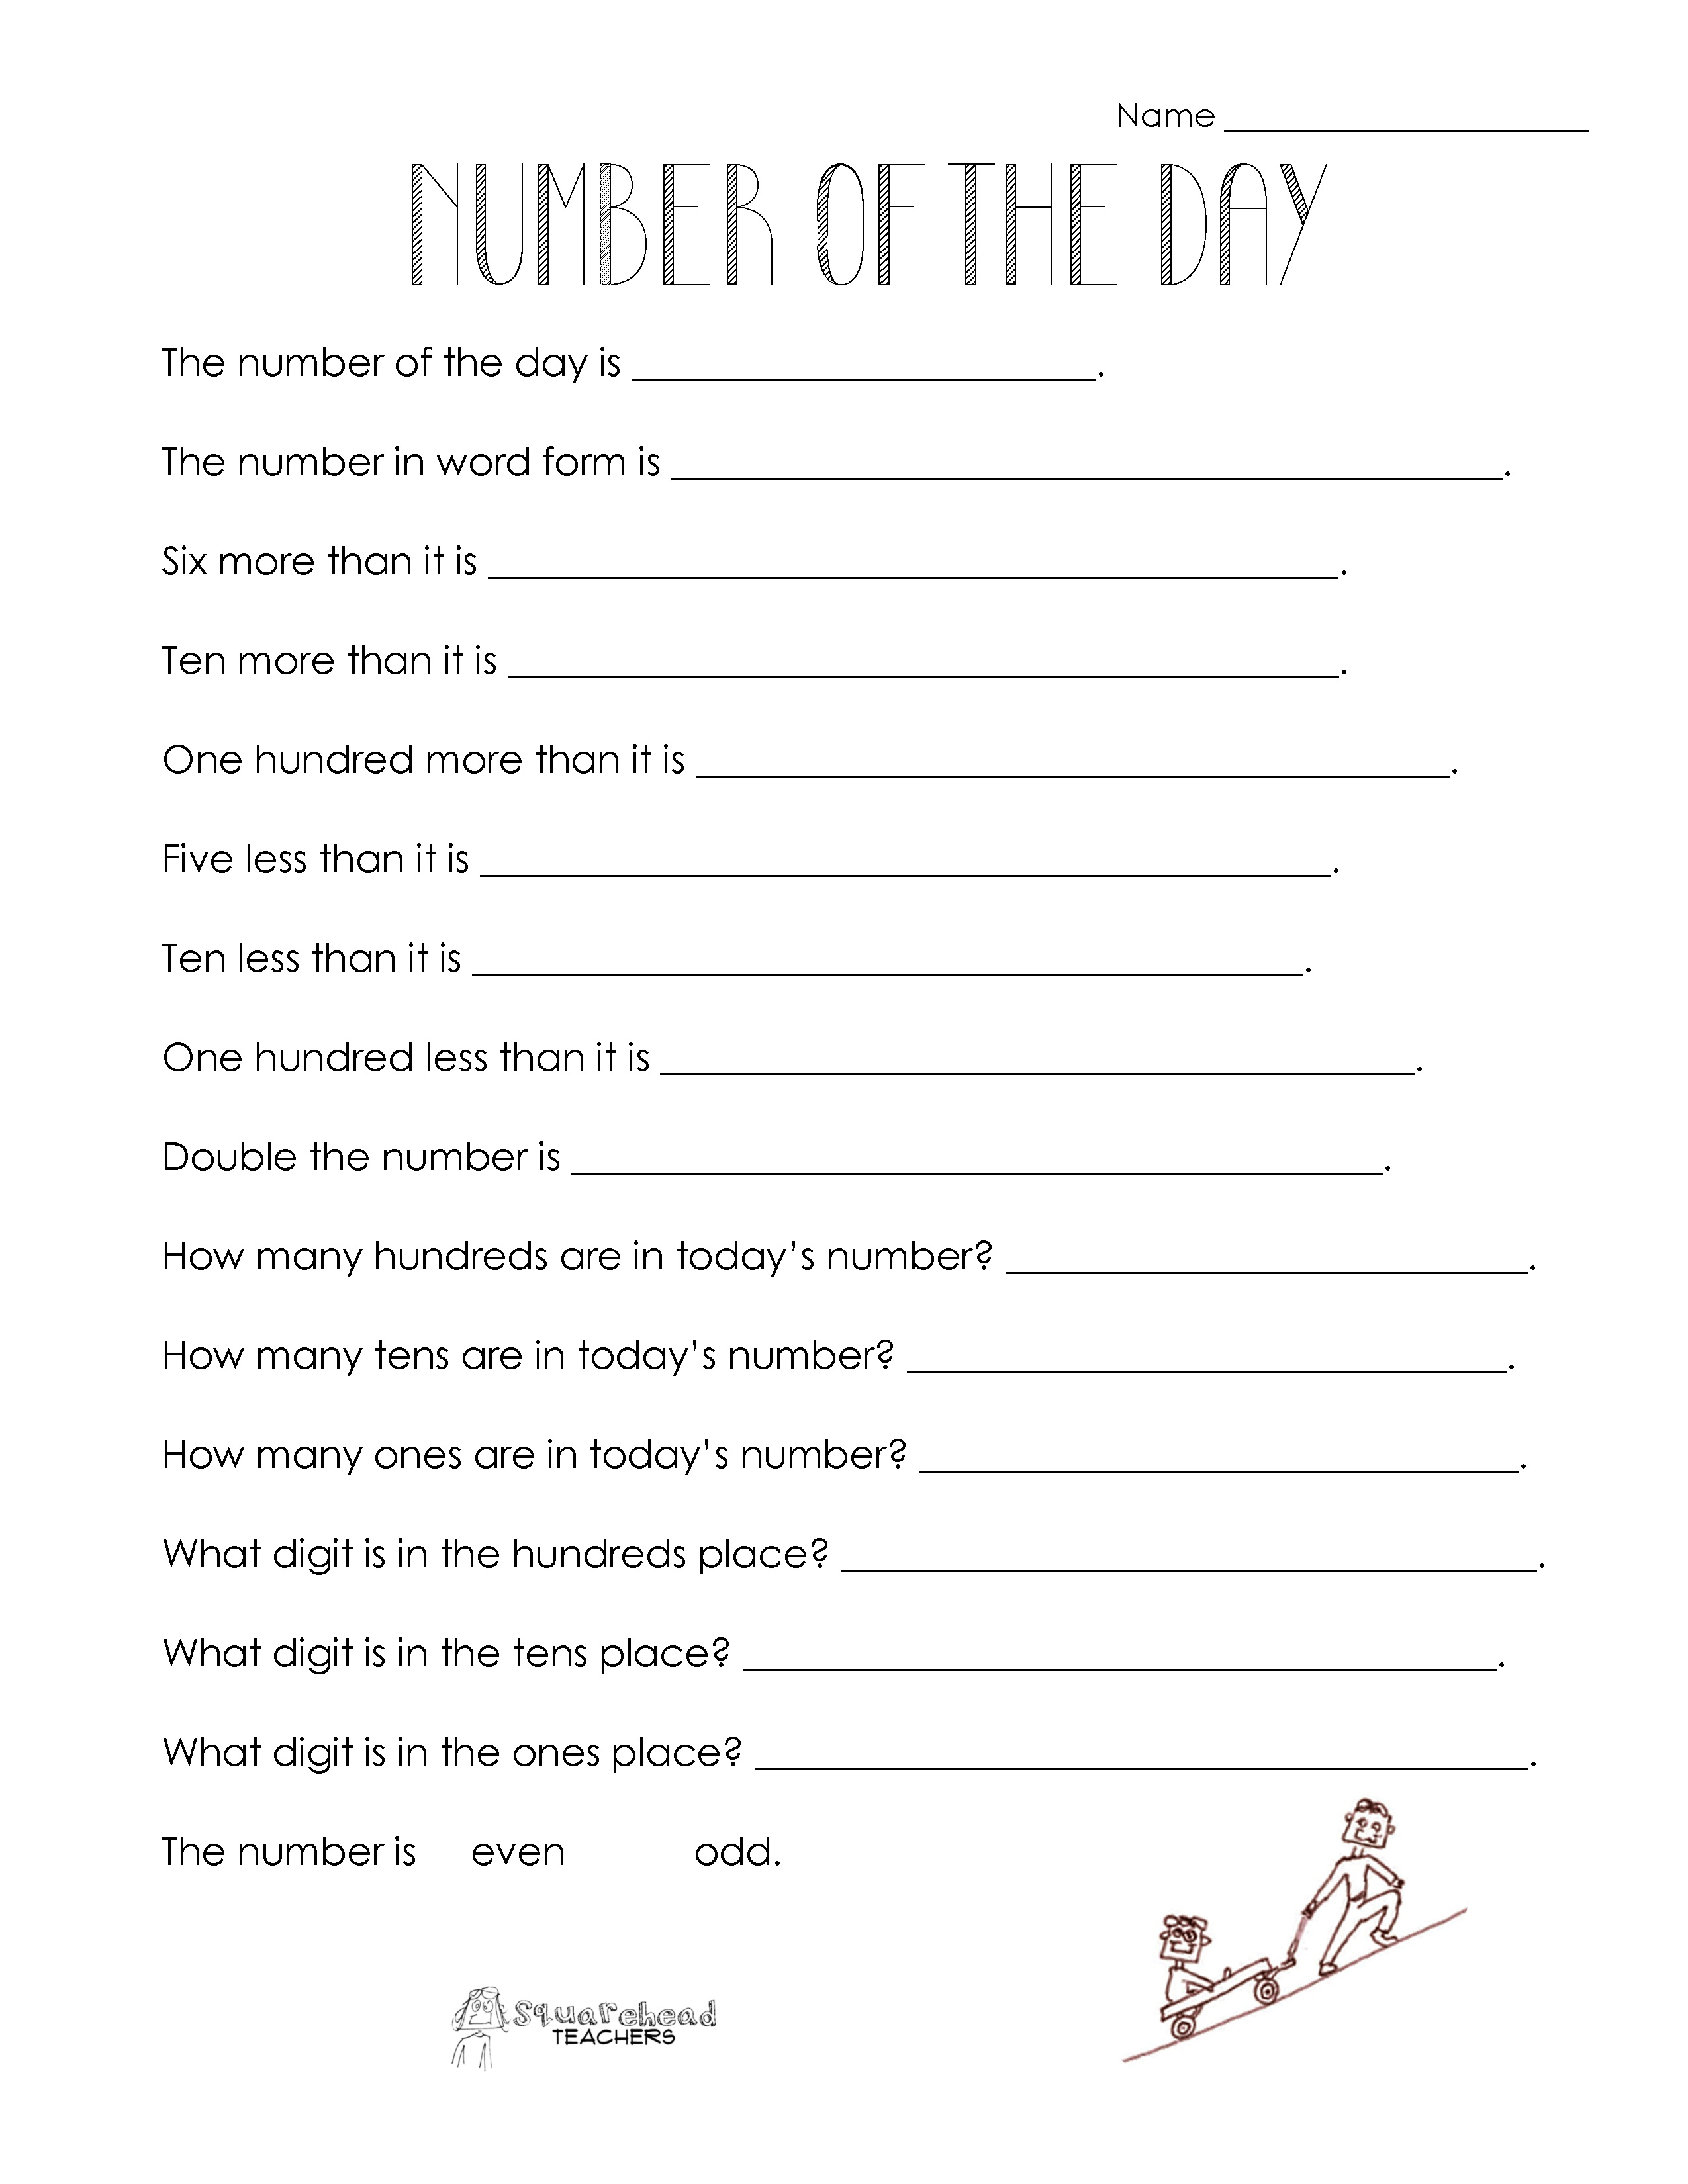 Free Printable Number Of The Day Worksheets